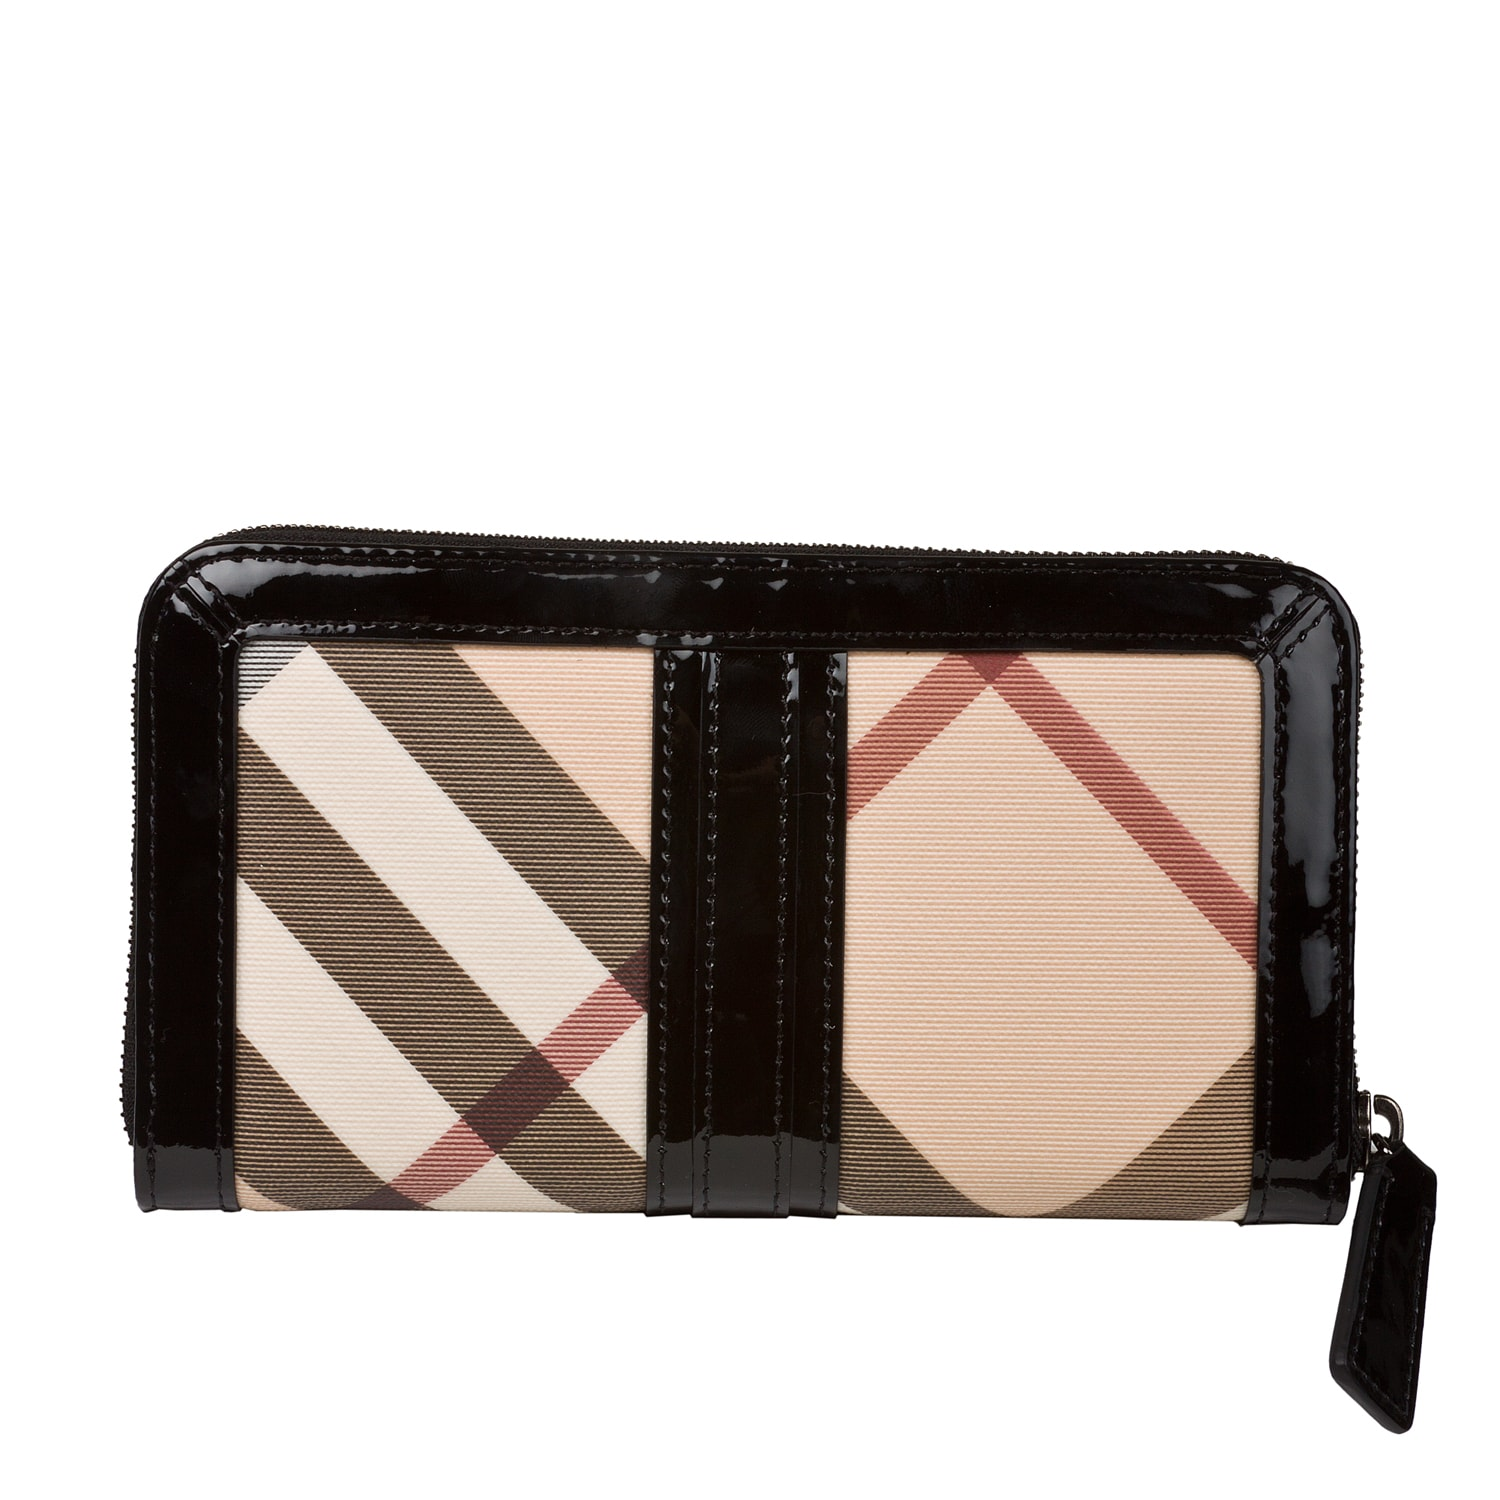 Shop Burberry Women s Large Nova Check Wallet - Free Shipping Today -  Overstock - 6552245 8fc0d40b347ac